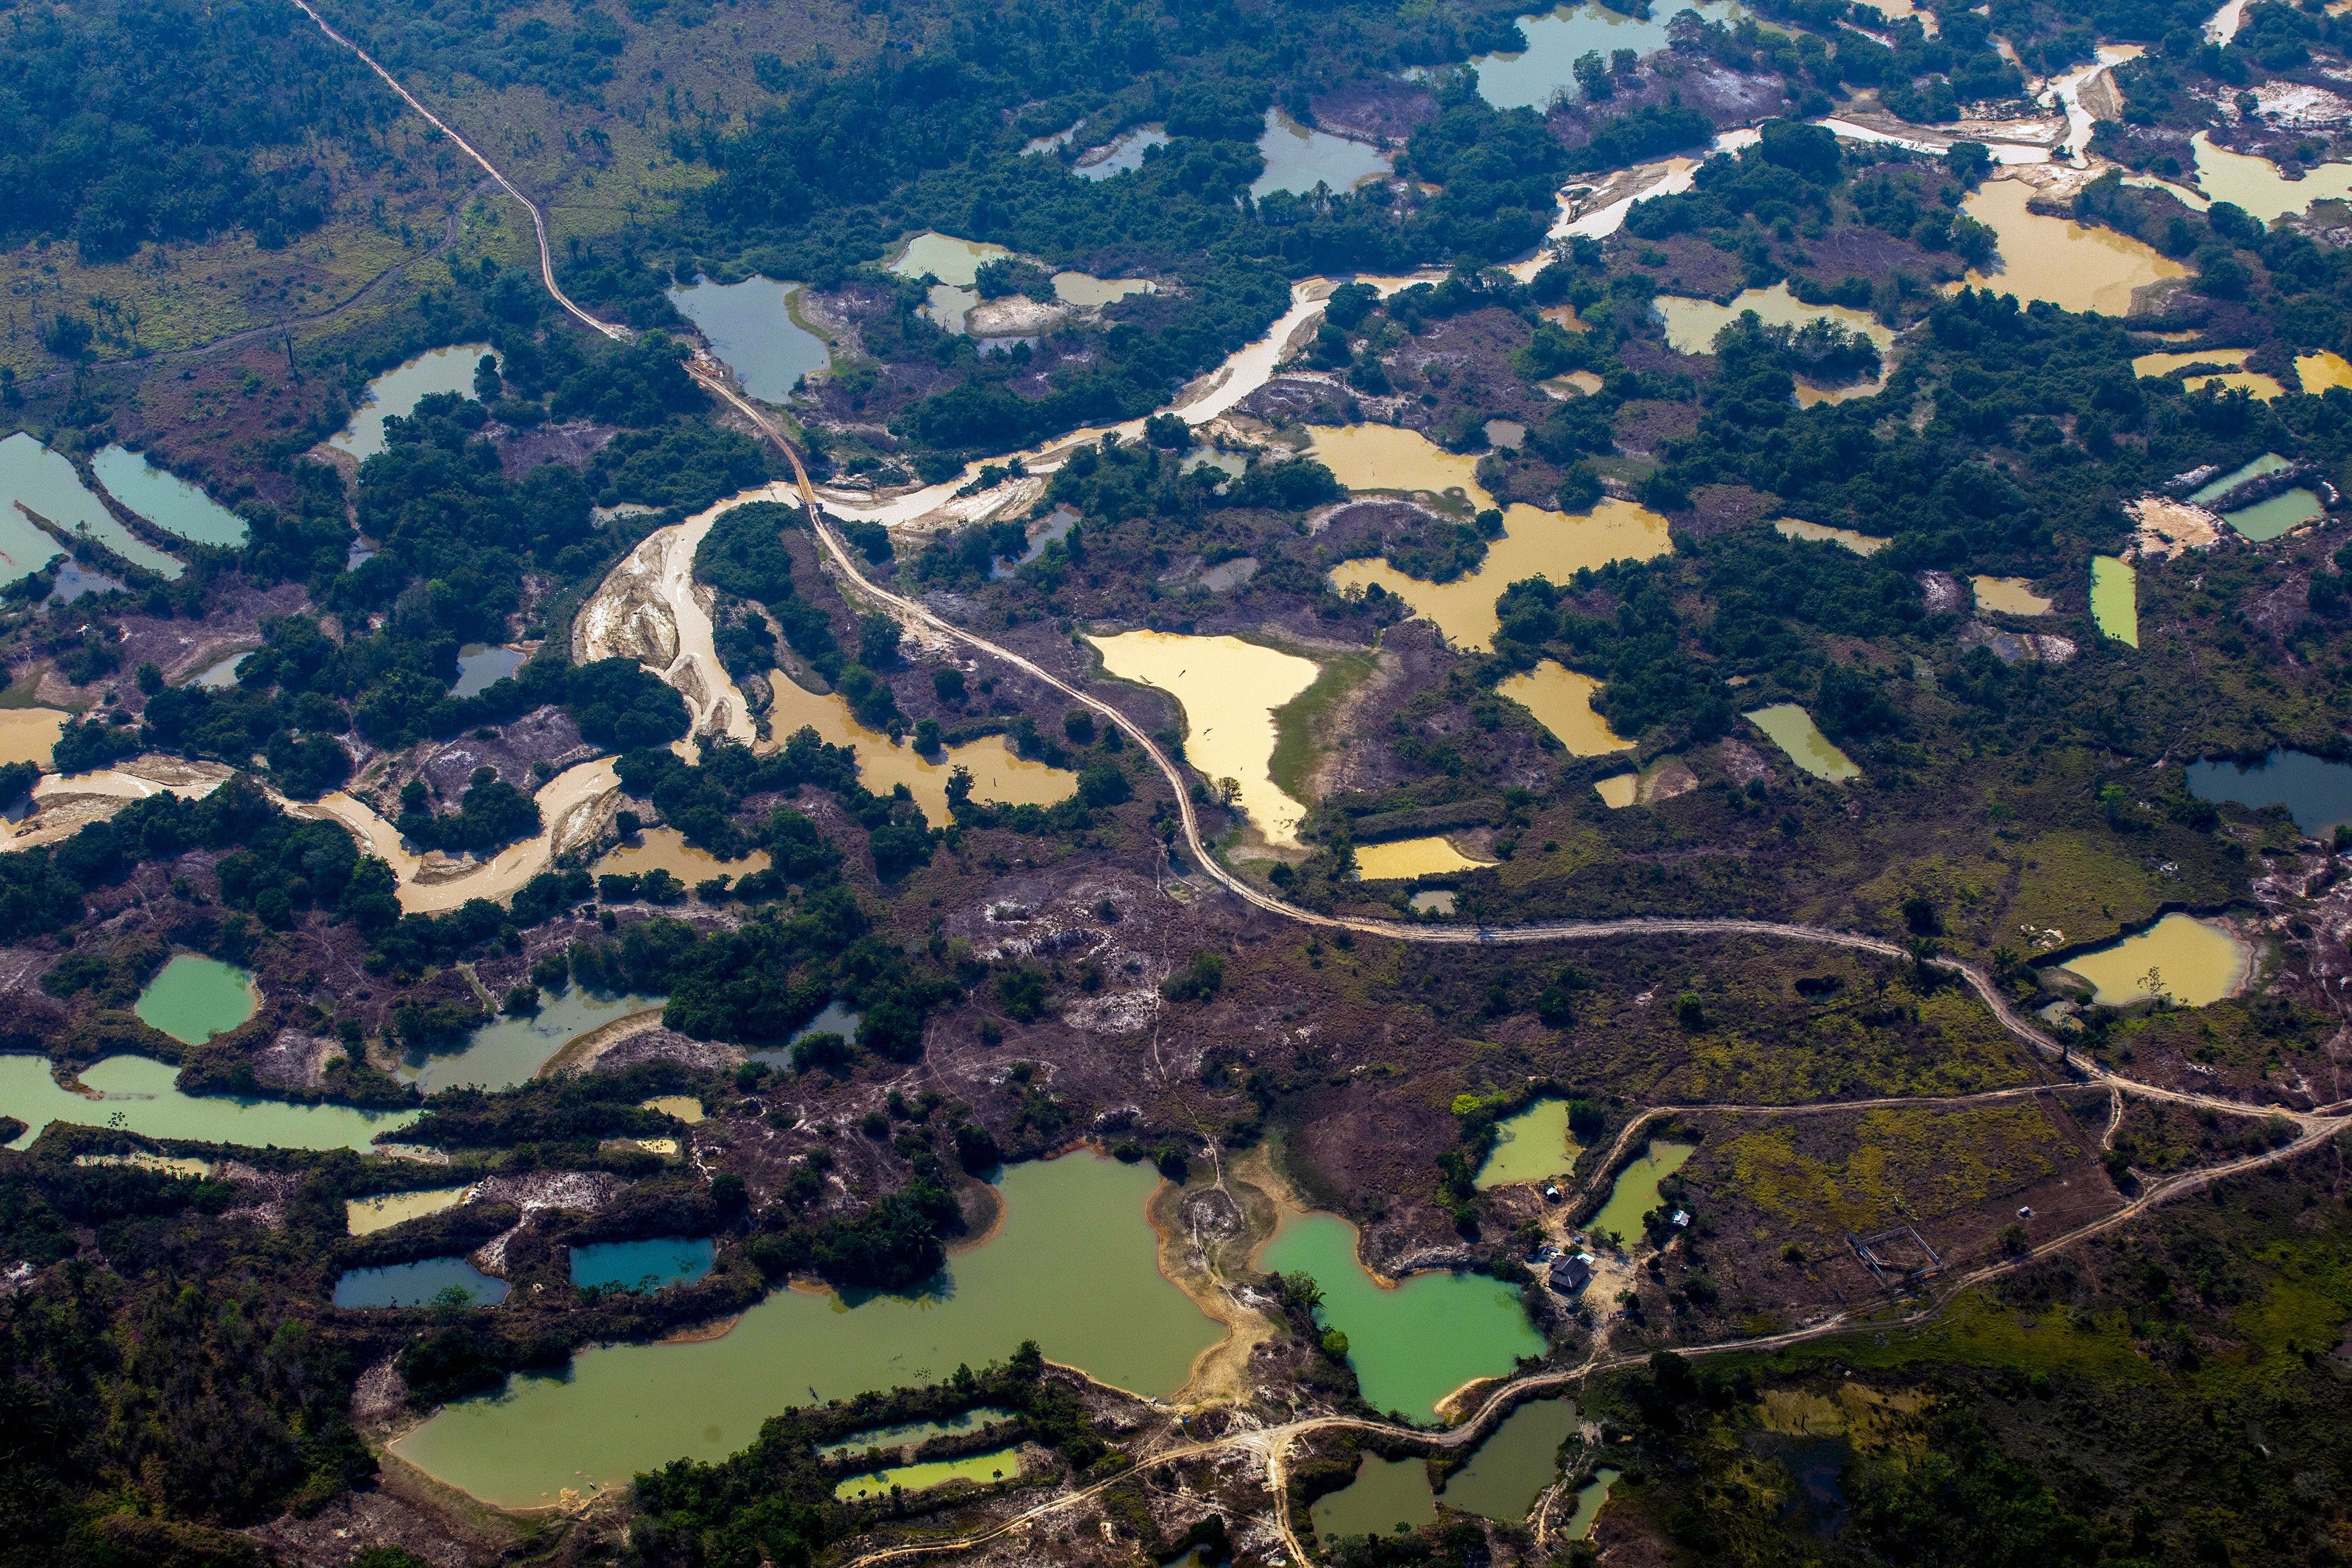 Aerial view the Esperanca IV informal gold mining camp, near the Menkragnoti indigenous territory, in Altamira, Para state, Brazil, in the Amazon basin, on August 28, 2019. (Photo by Joao LAET / AFP)        (Photo credit should read JOAO LAET/AFP via Getty Images)